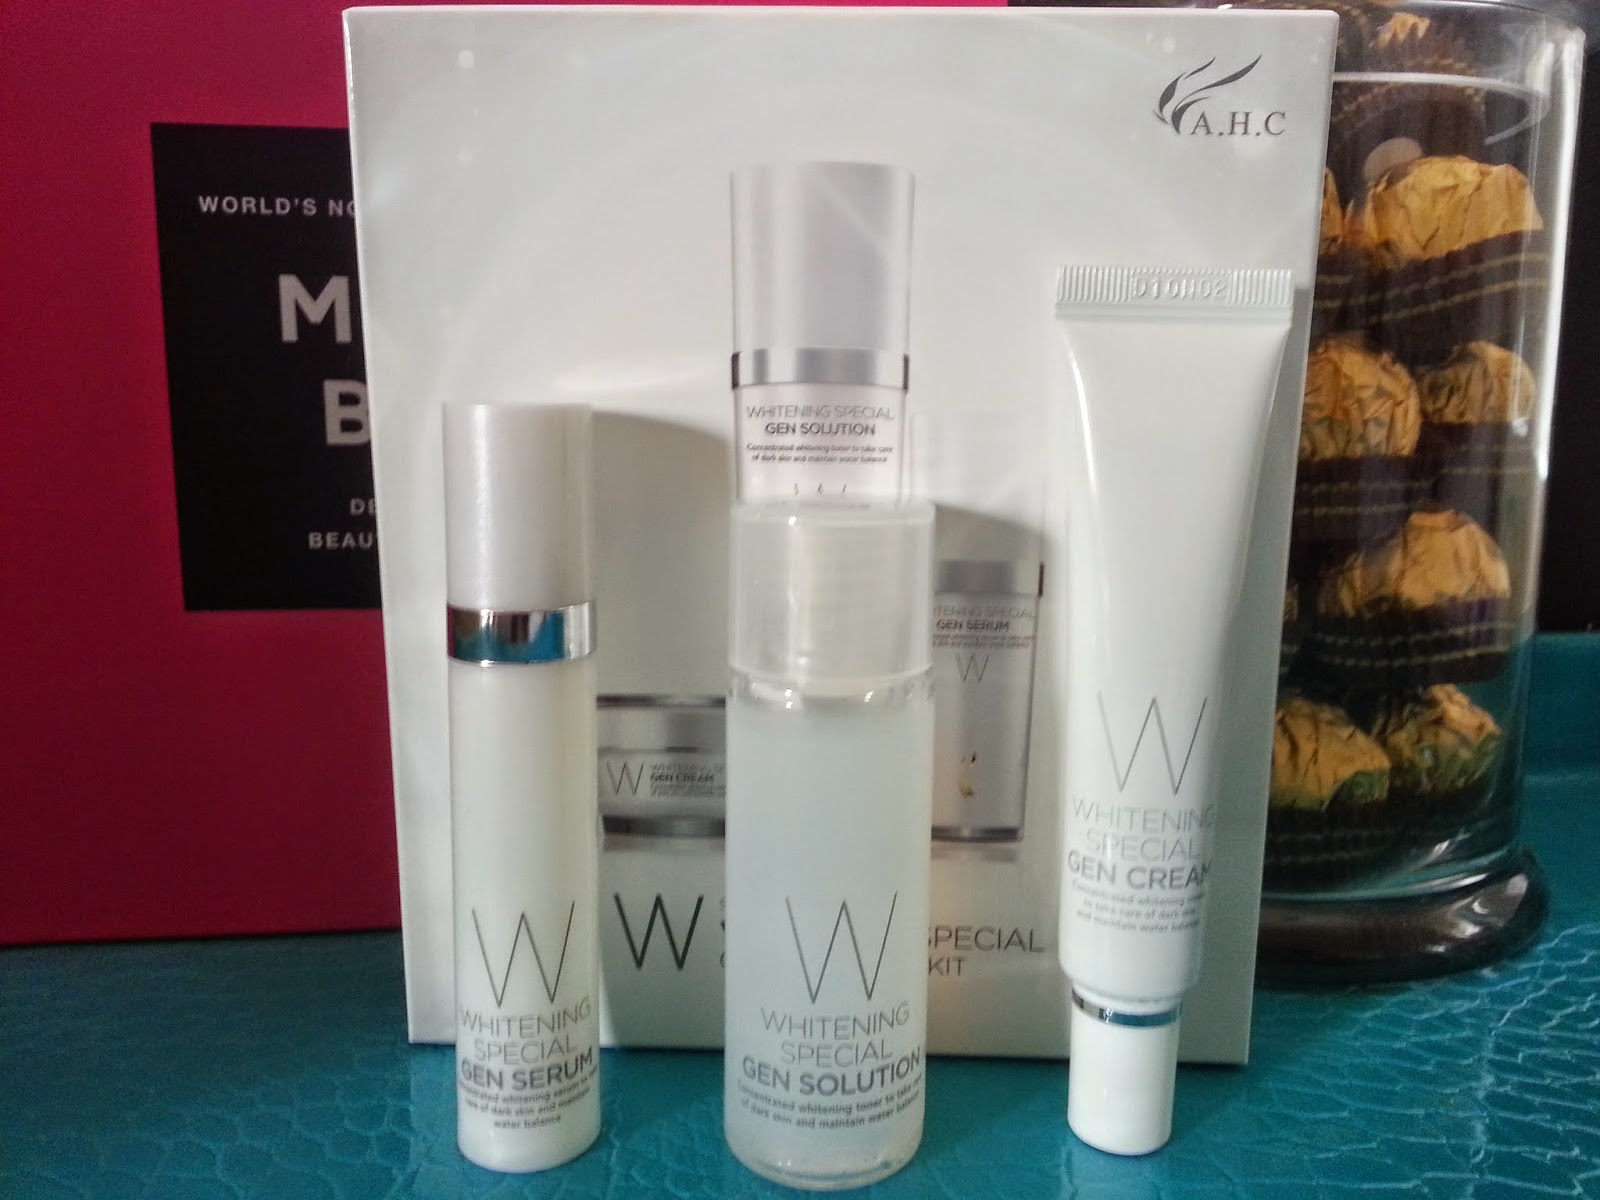 A.H.C Whitening Special Gen Skin Care Kit